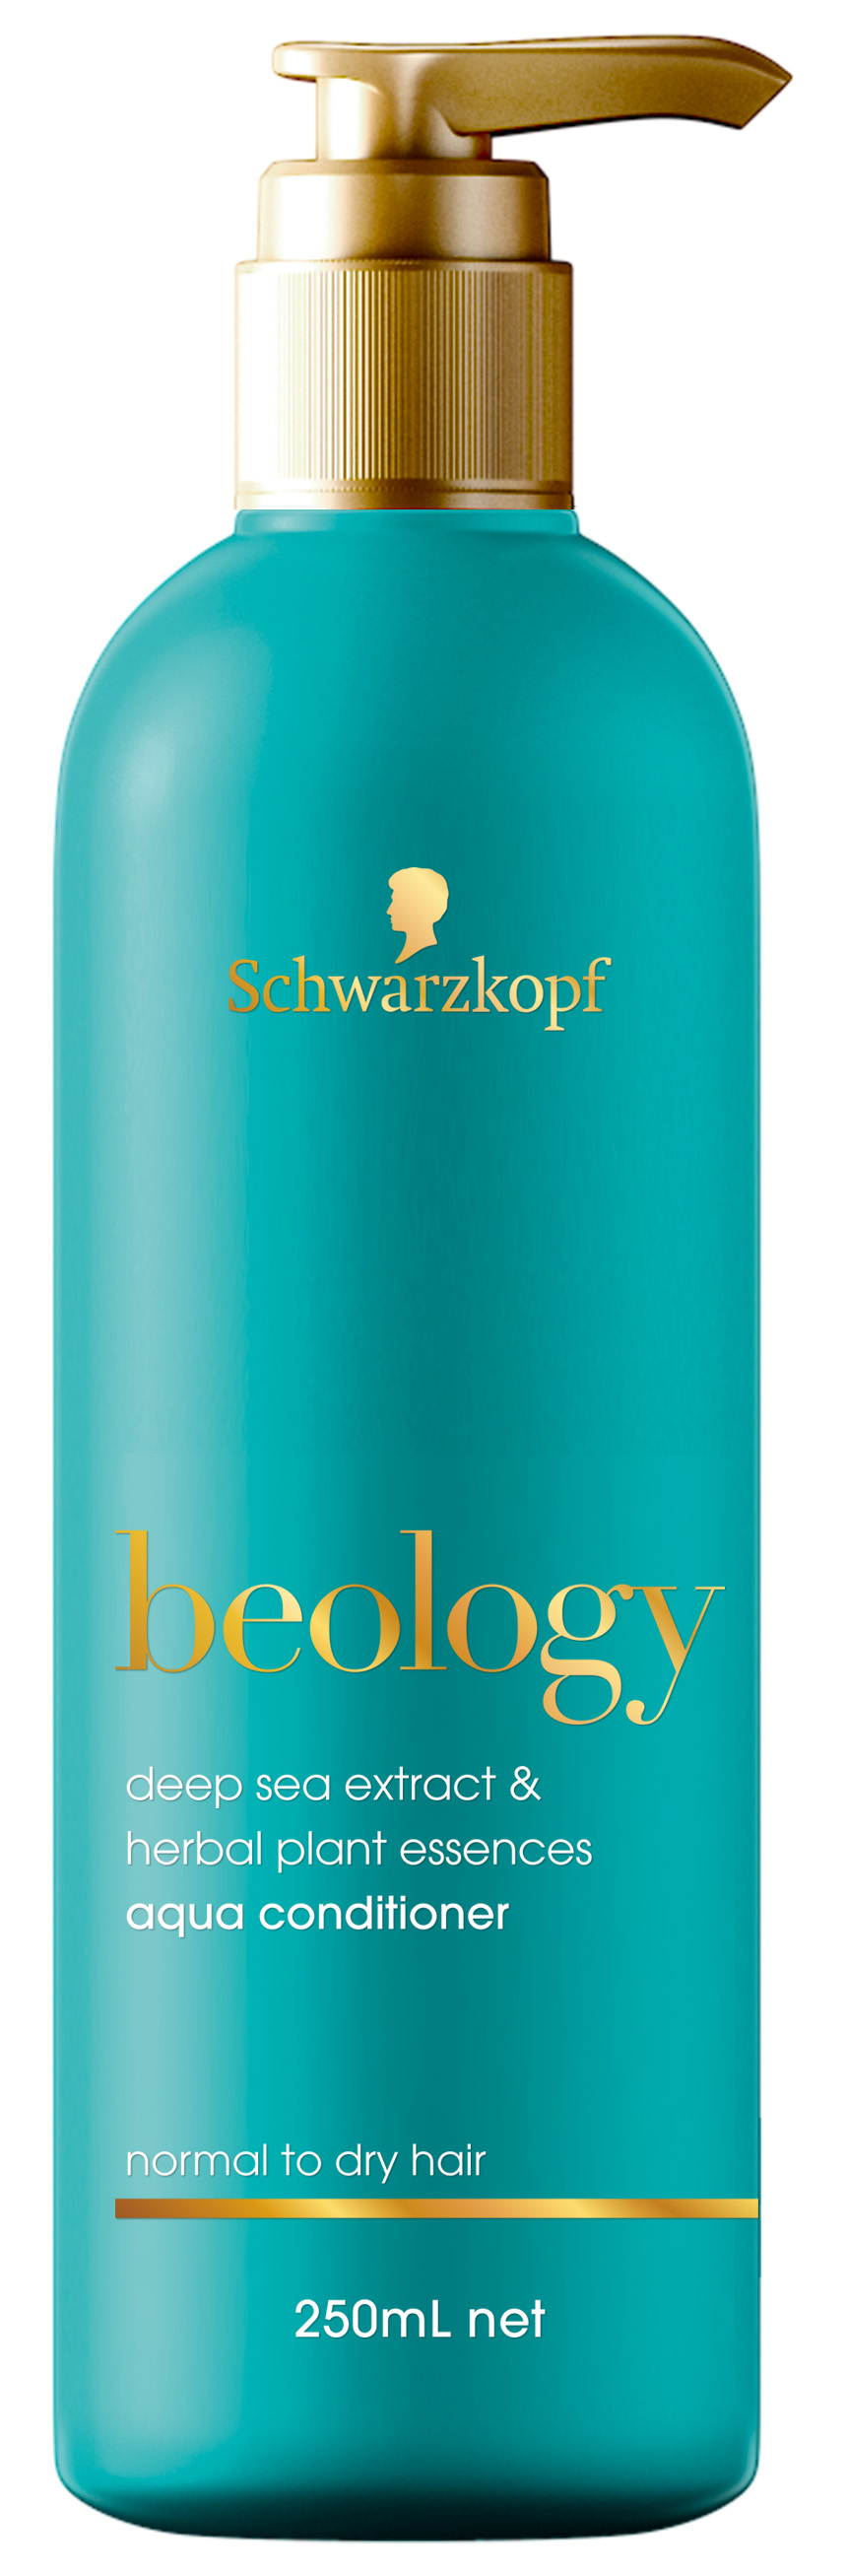 Beology_Aqua_Conditioner copy